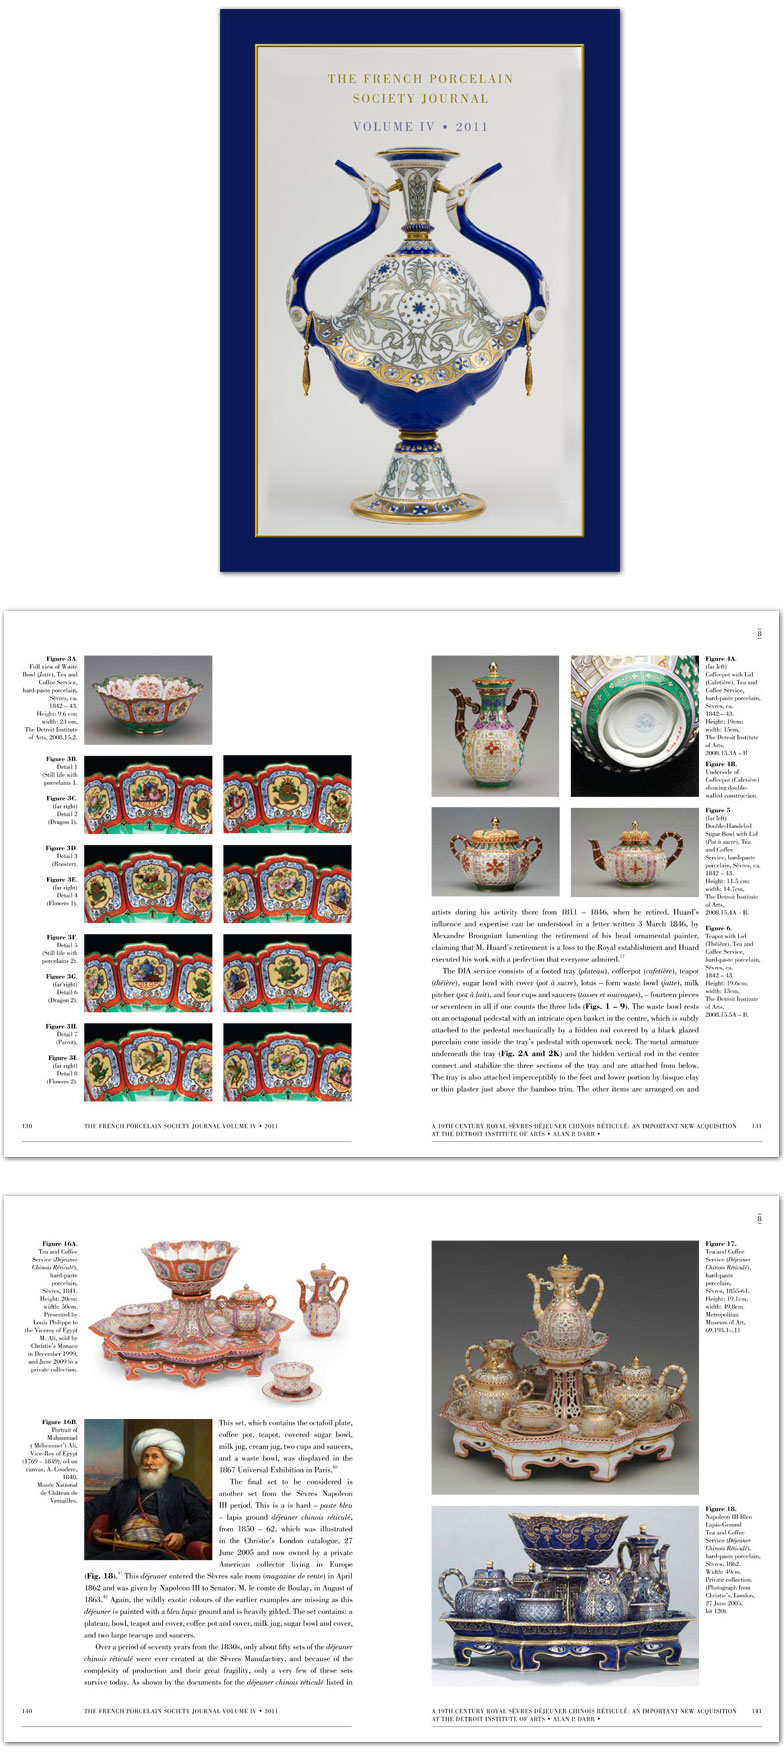 The French Porcelain Society Journal